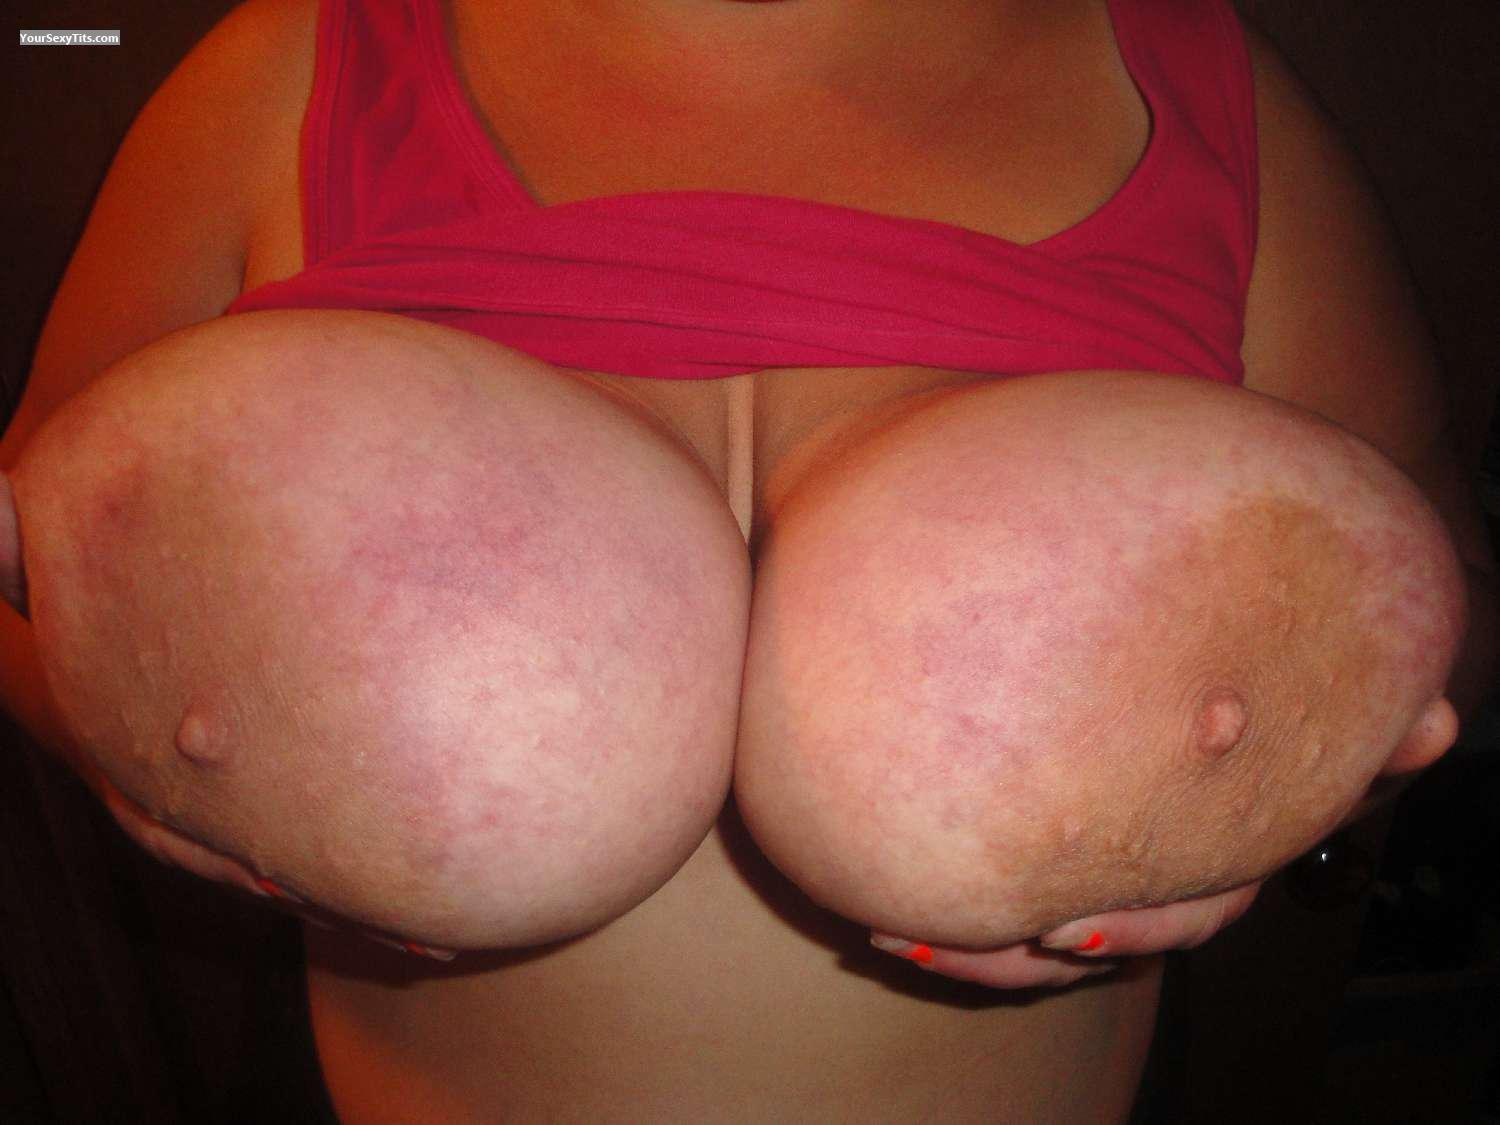 Tit Flash: Wife's Extremely Big Tits - Wifes Big Boobs from United States